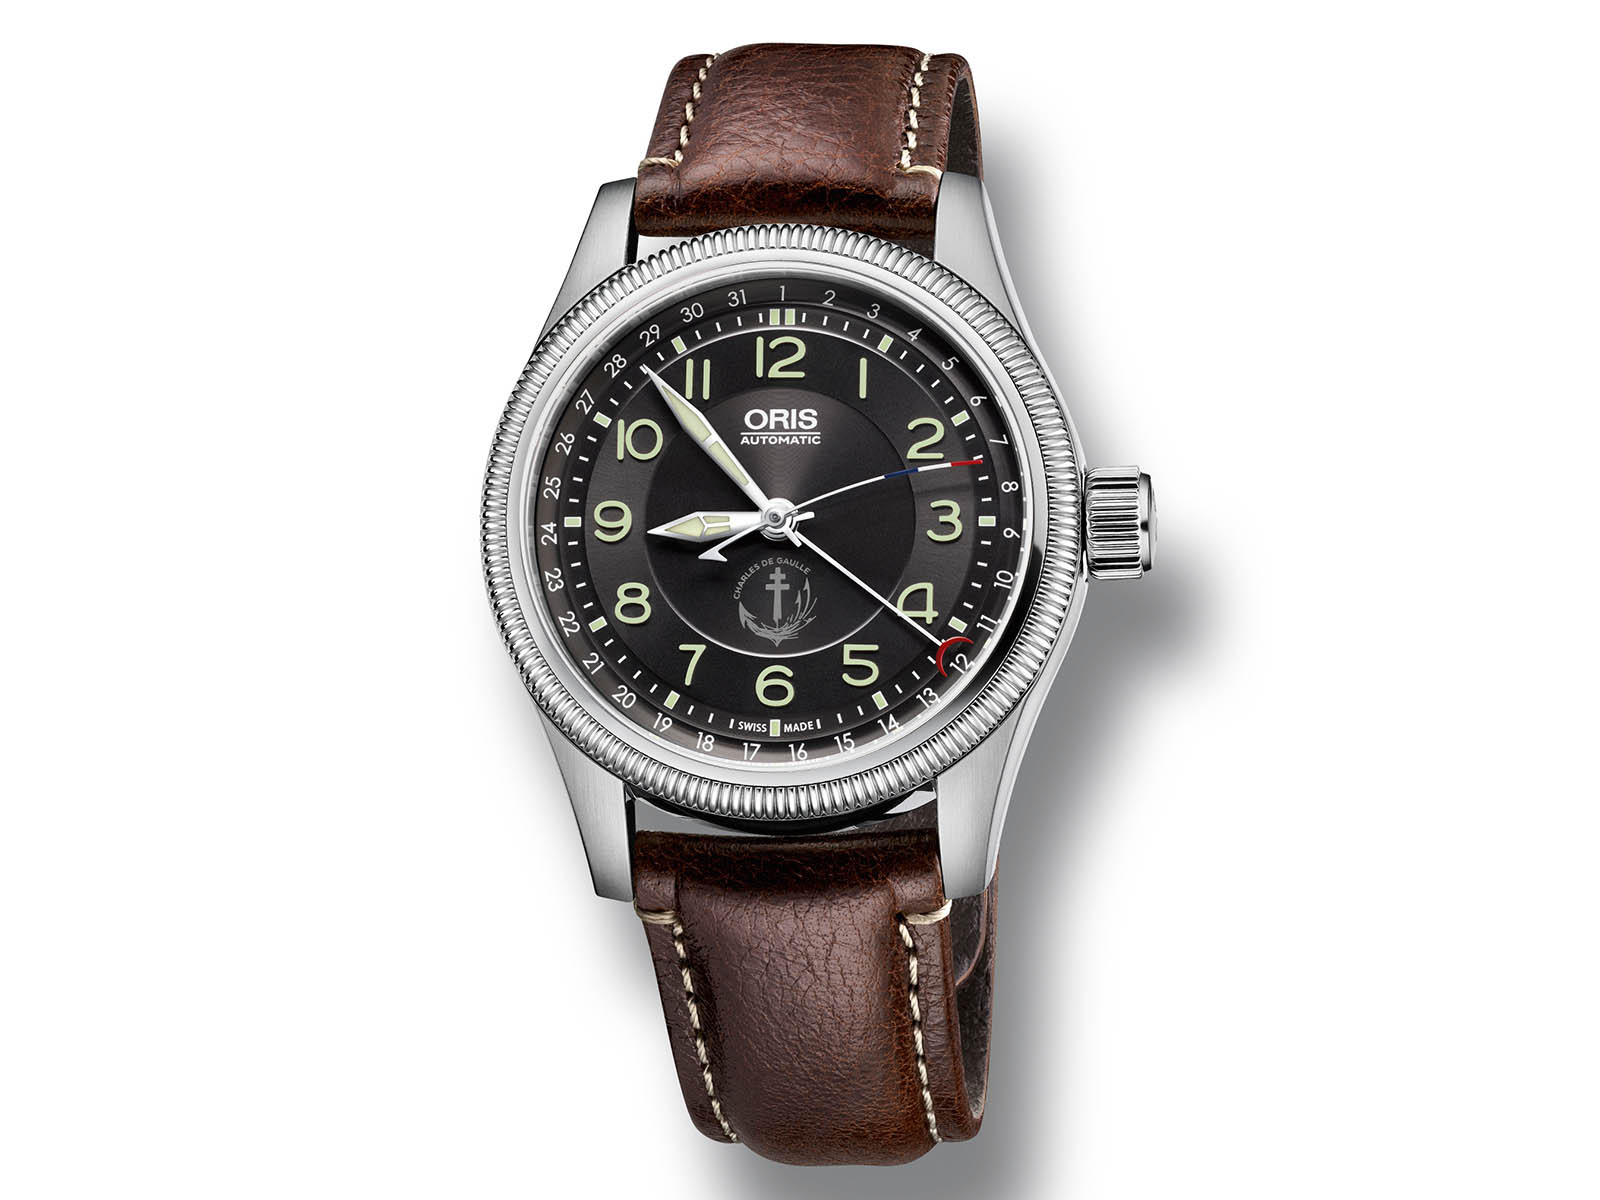 oris-big-crown-pa-charles-de-gaulle-2.jpg